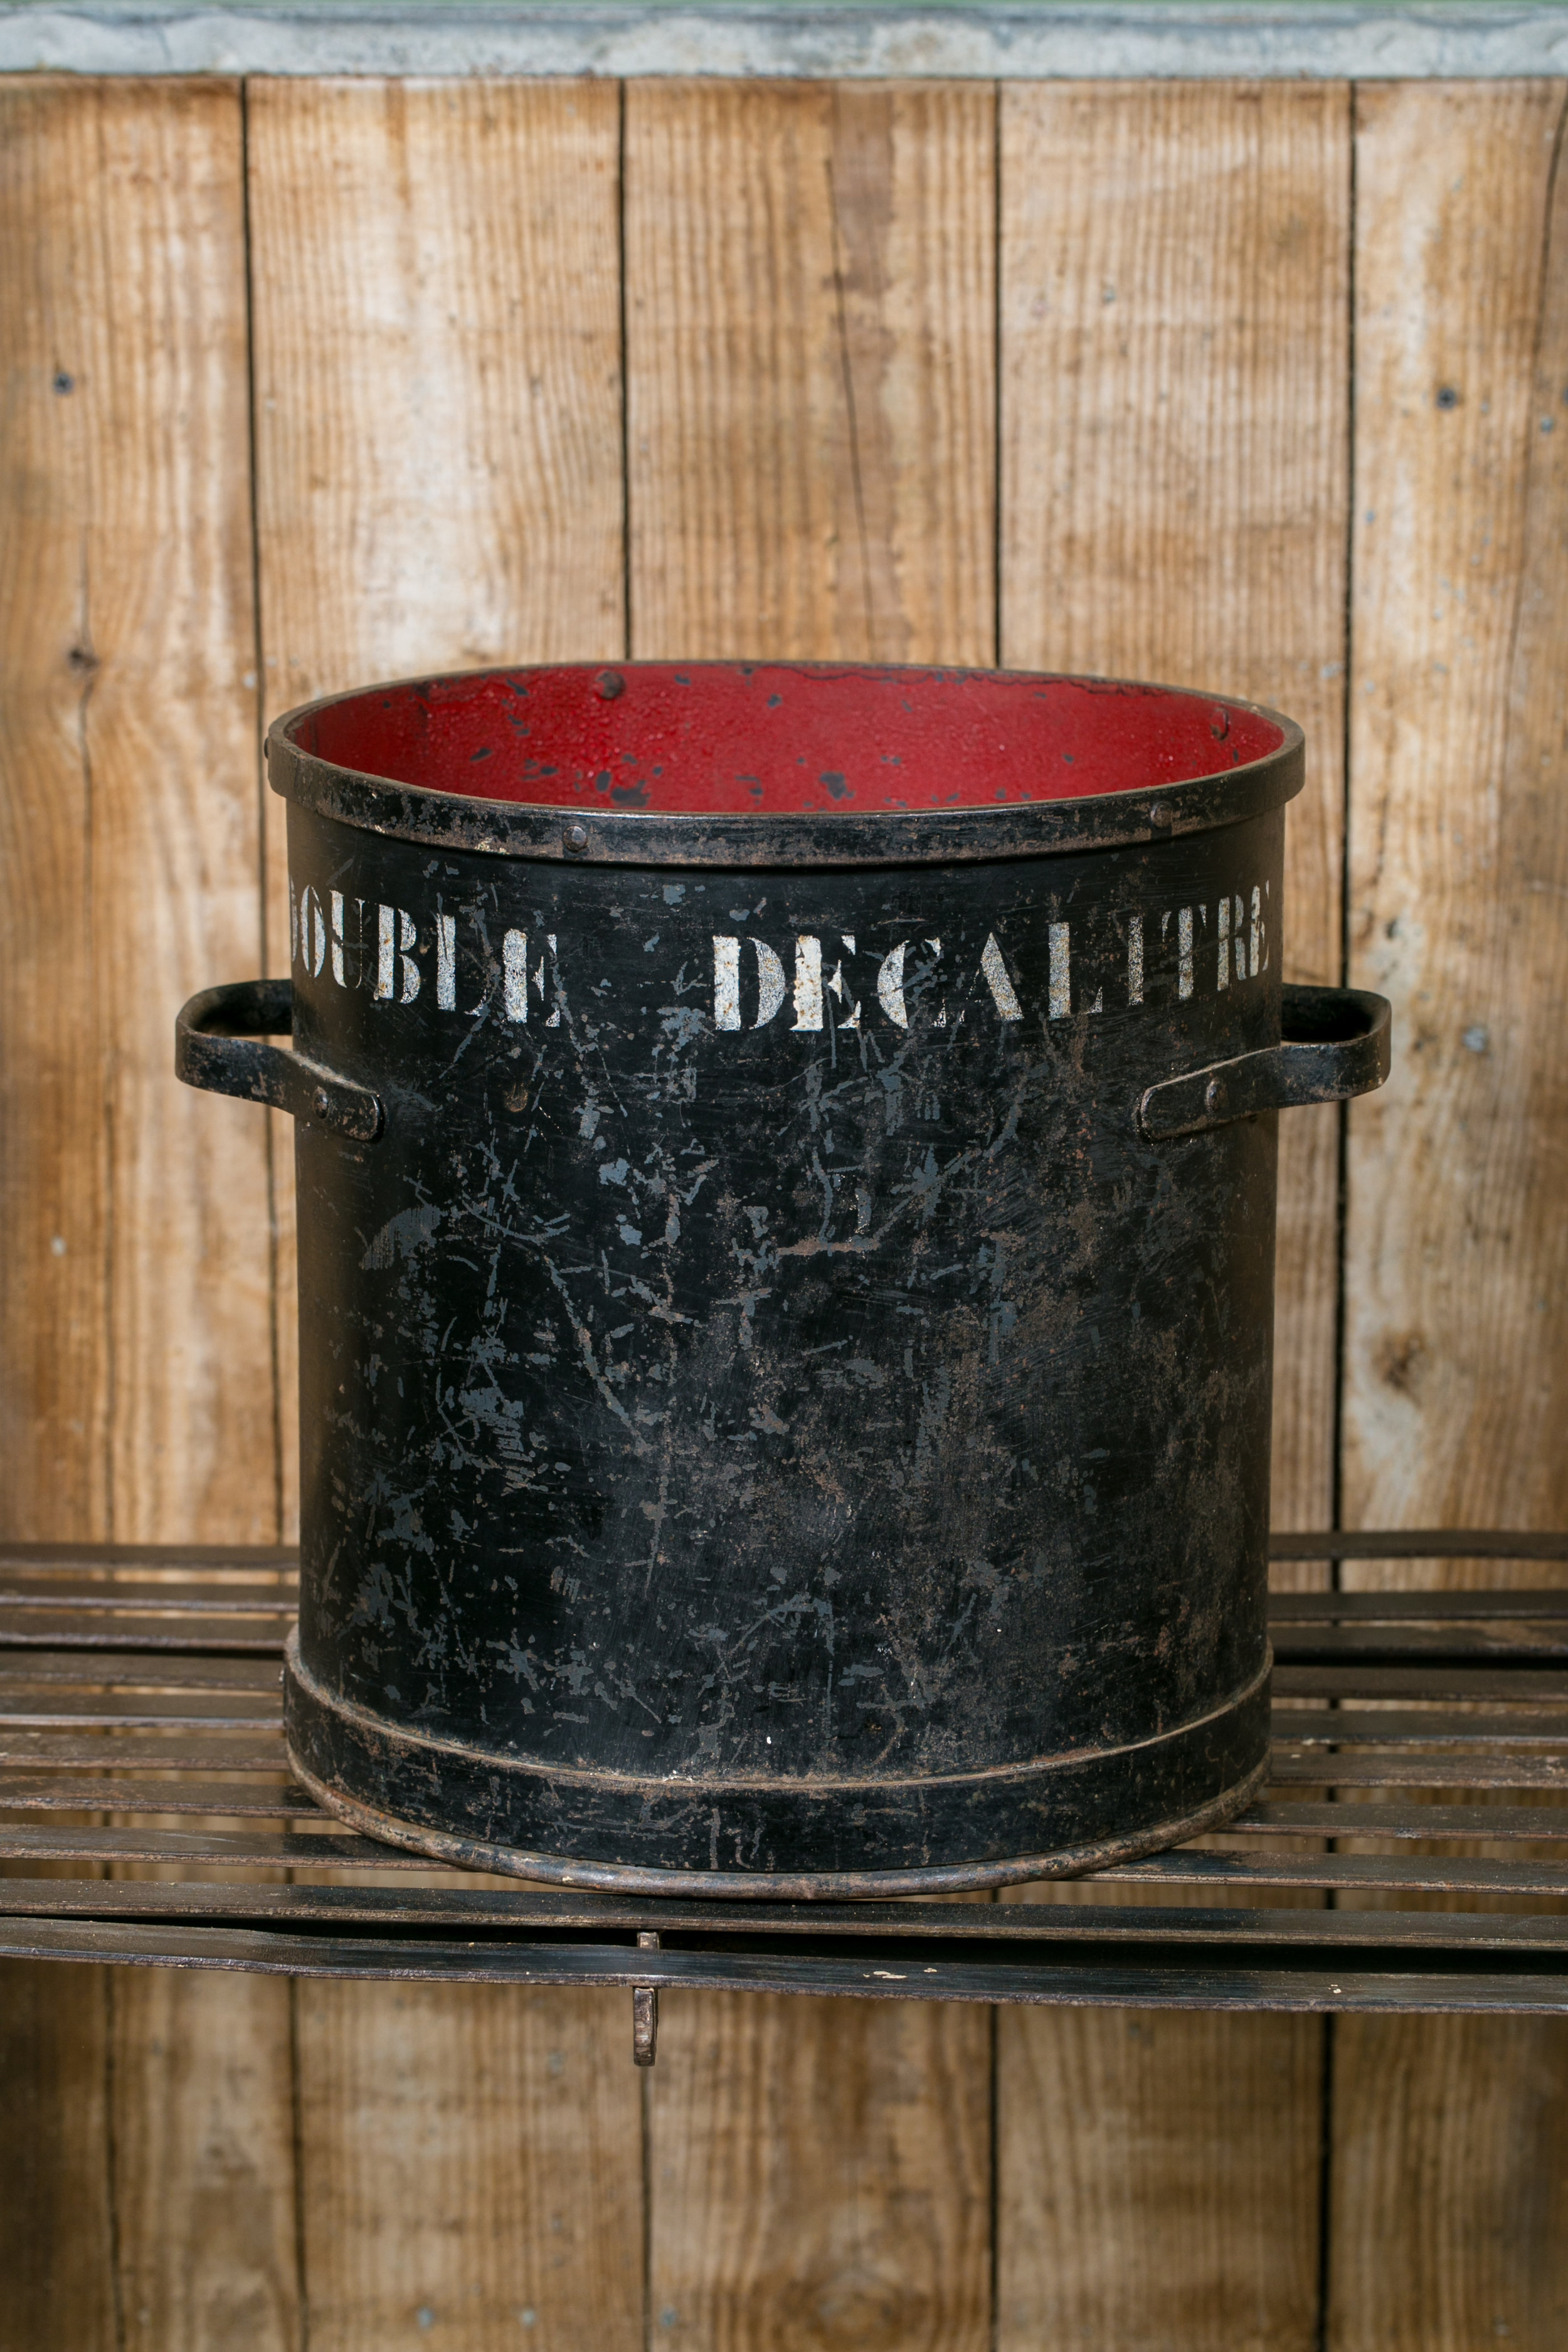 Vintage Large Red and Black Double Decalitre Measure from Belgium, circa 1940